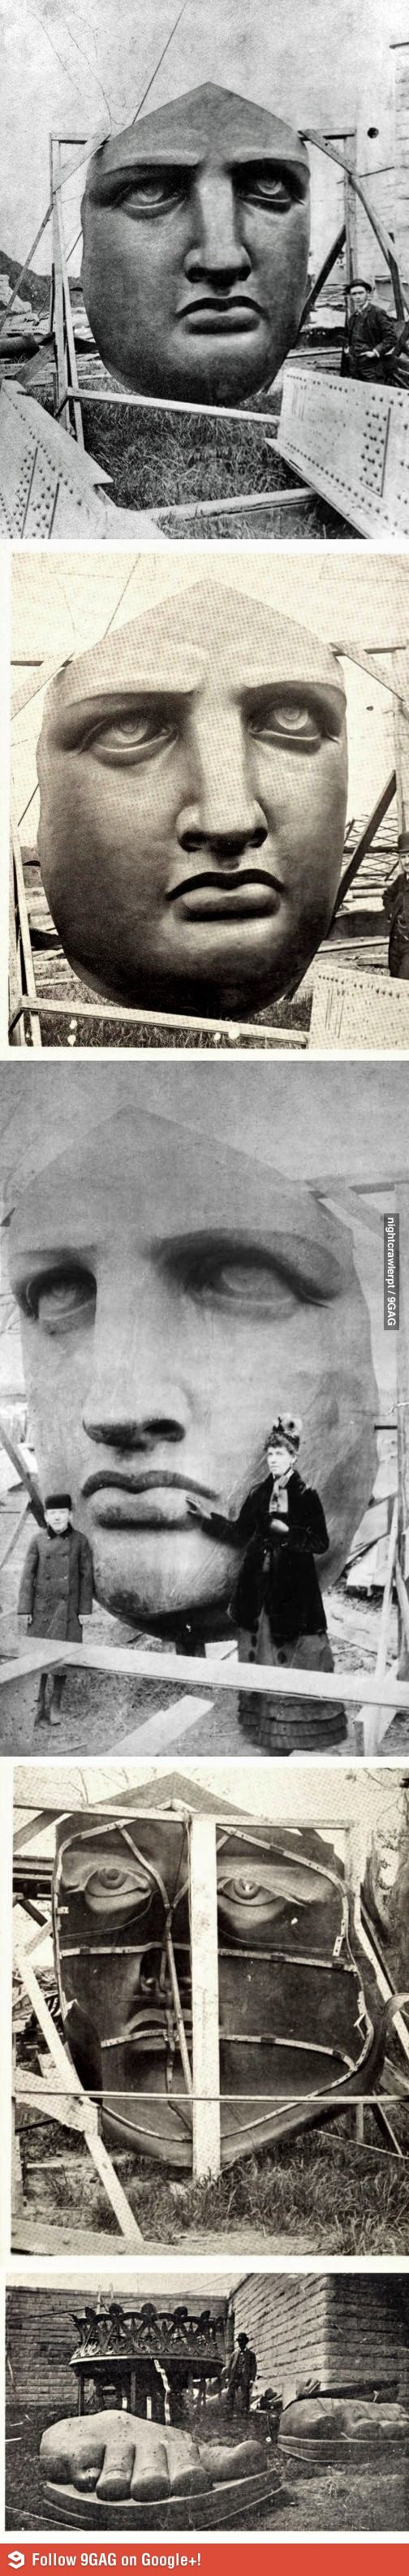 Unboxing the Statue of Liberty, 1885. ☚